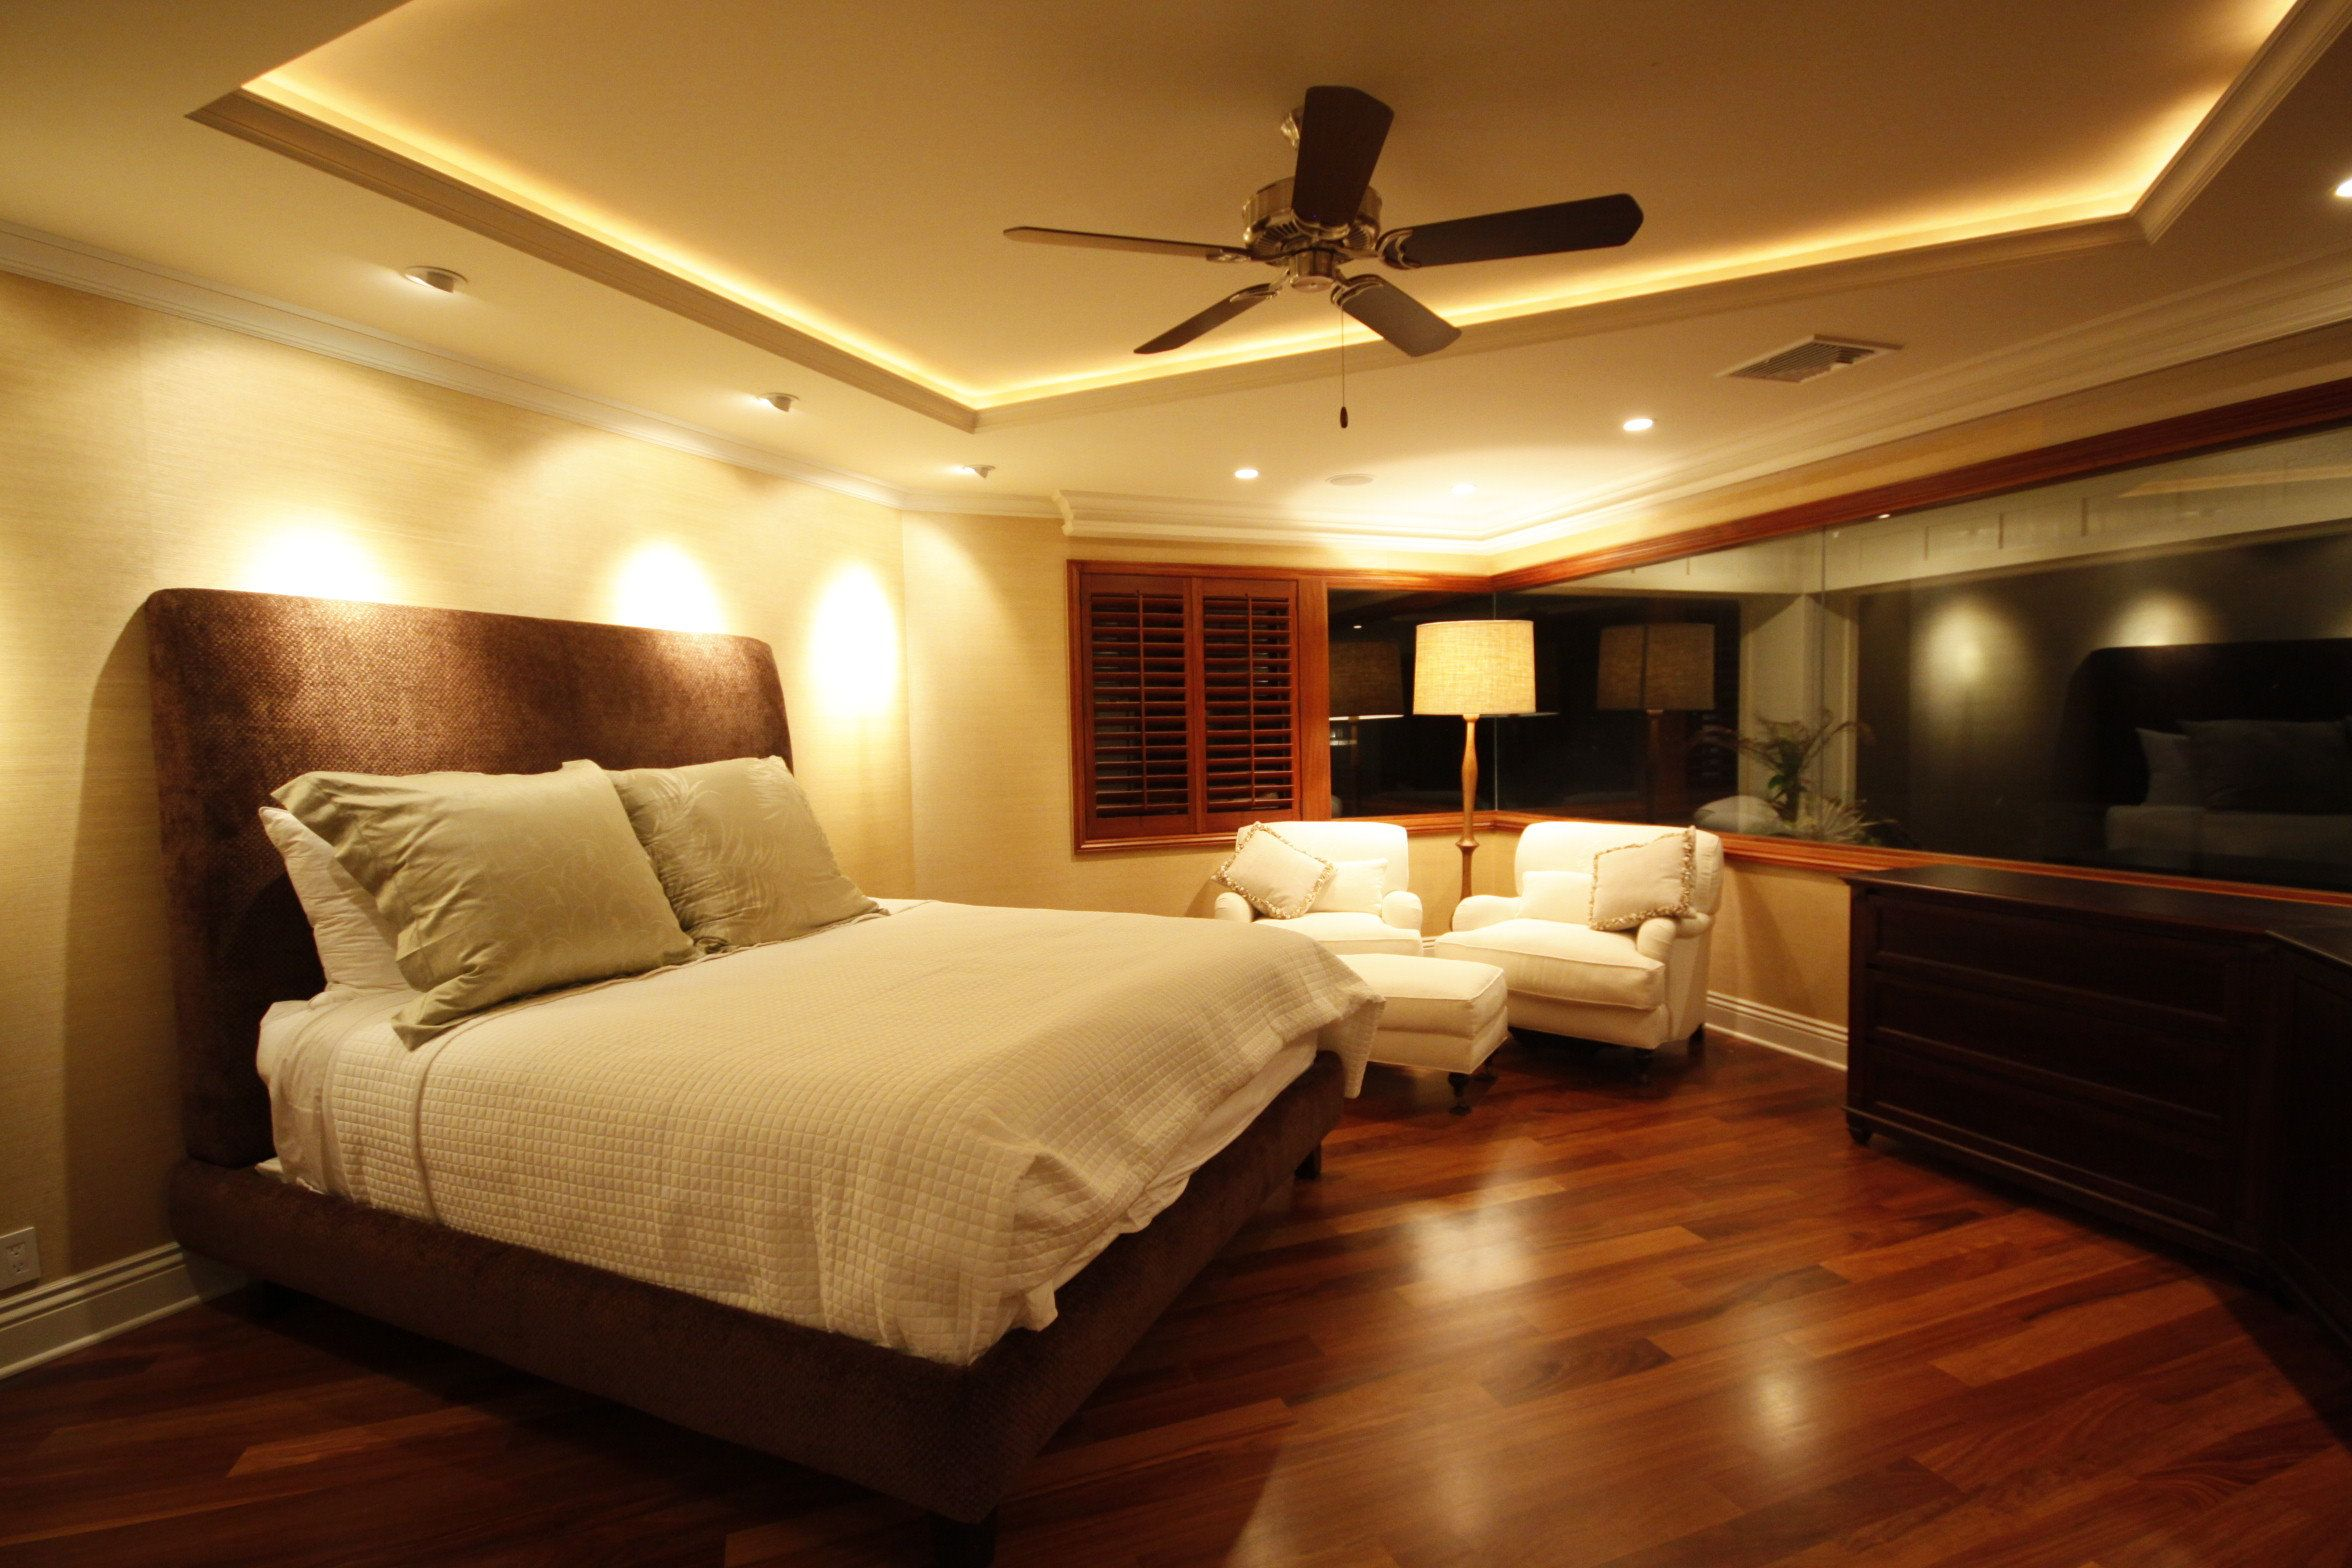 Appealing master bedroom modern decor with wooden floors for Master bedroom design ideas pictures